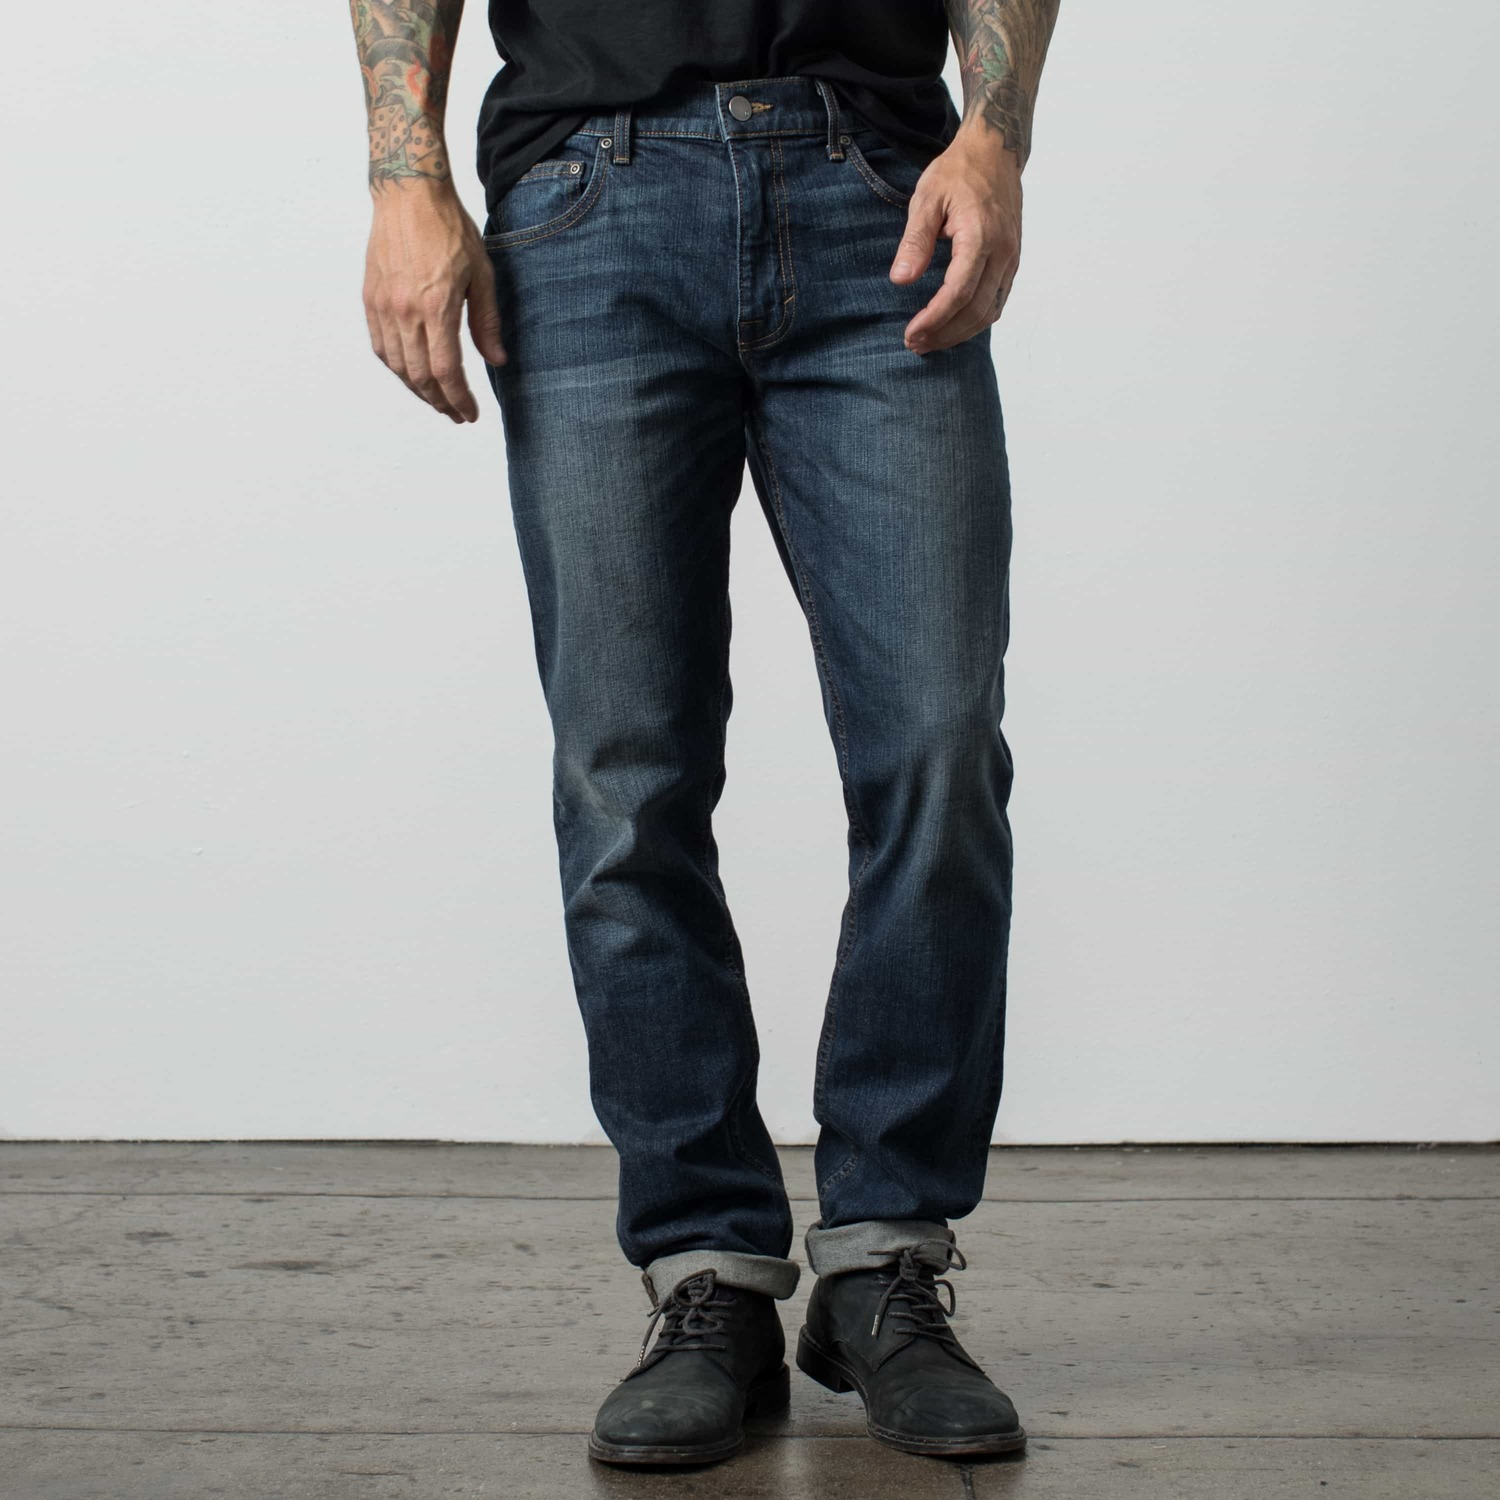 Mens Slim Jeans In Dark Worn  85  51c7a711c